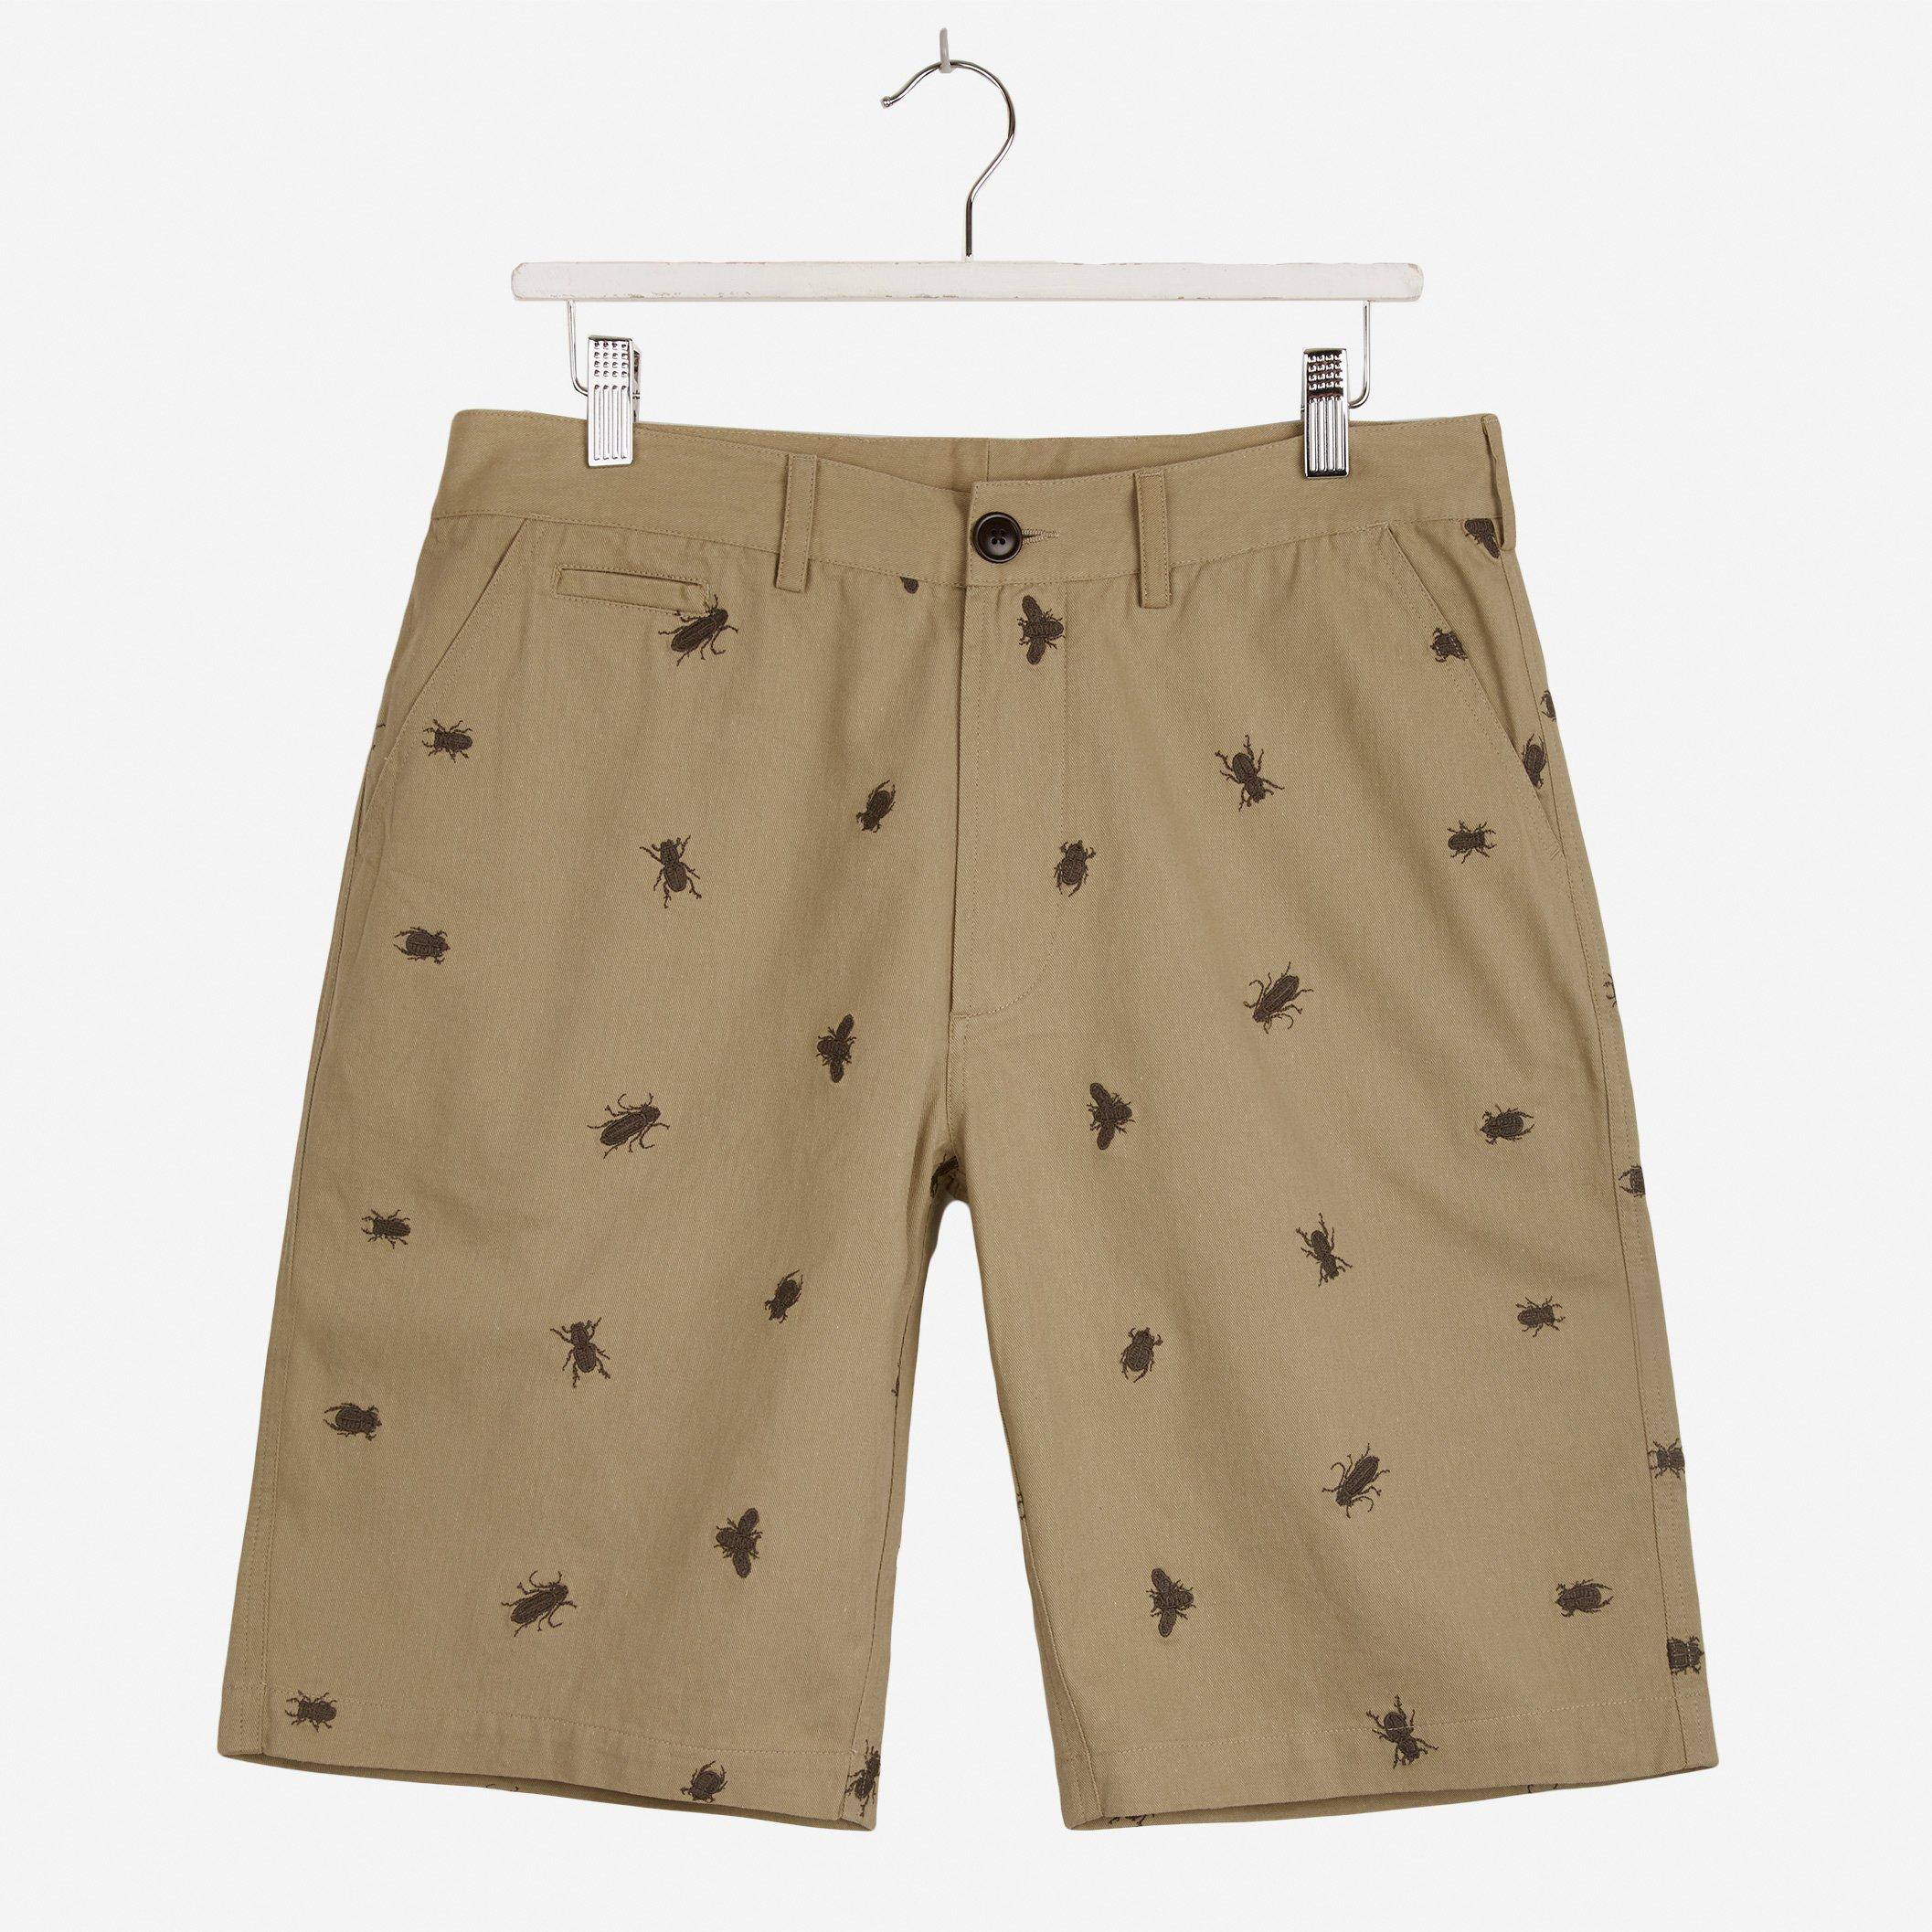 Barbour Beetle Shorts